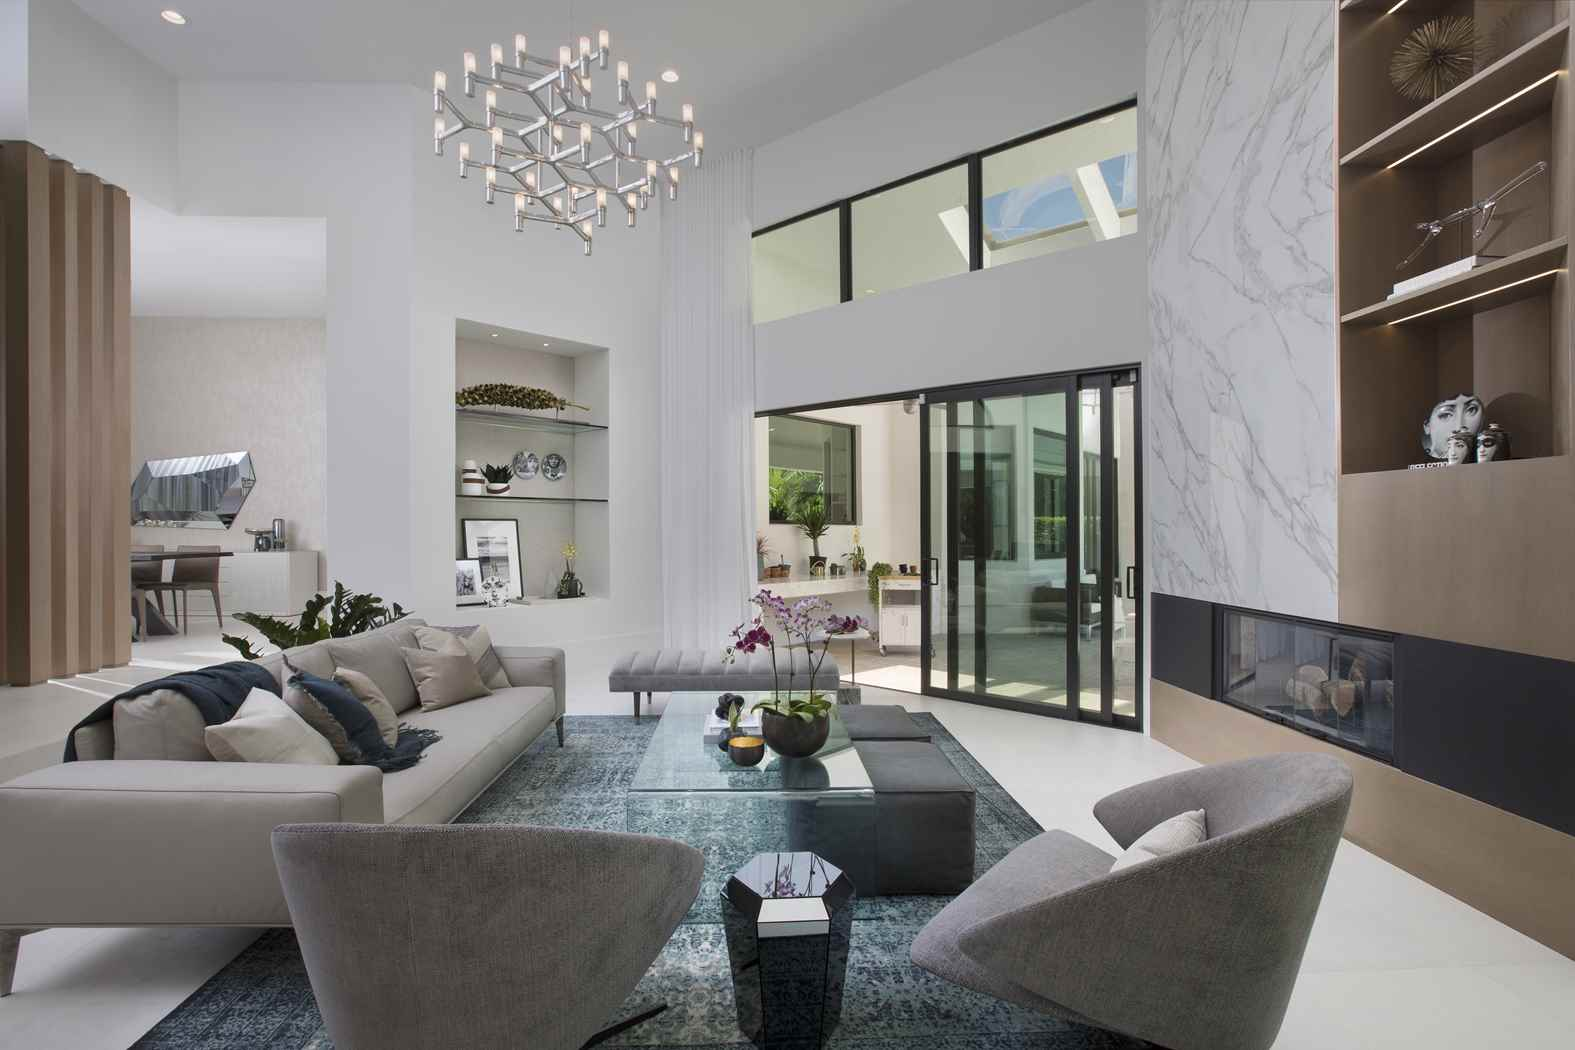 Residential Interior Design Project In Coral Gables, Florida